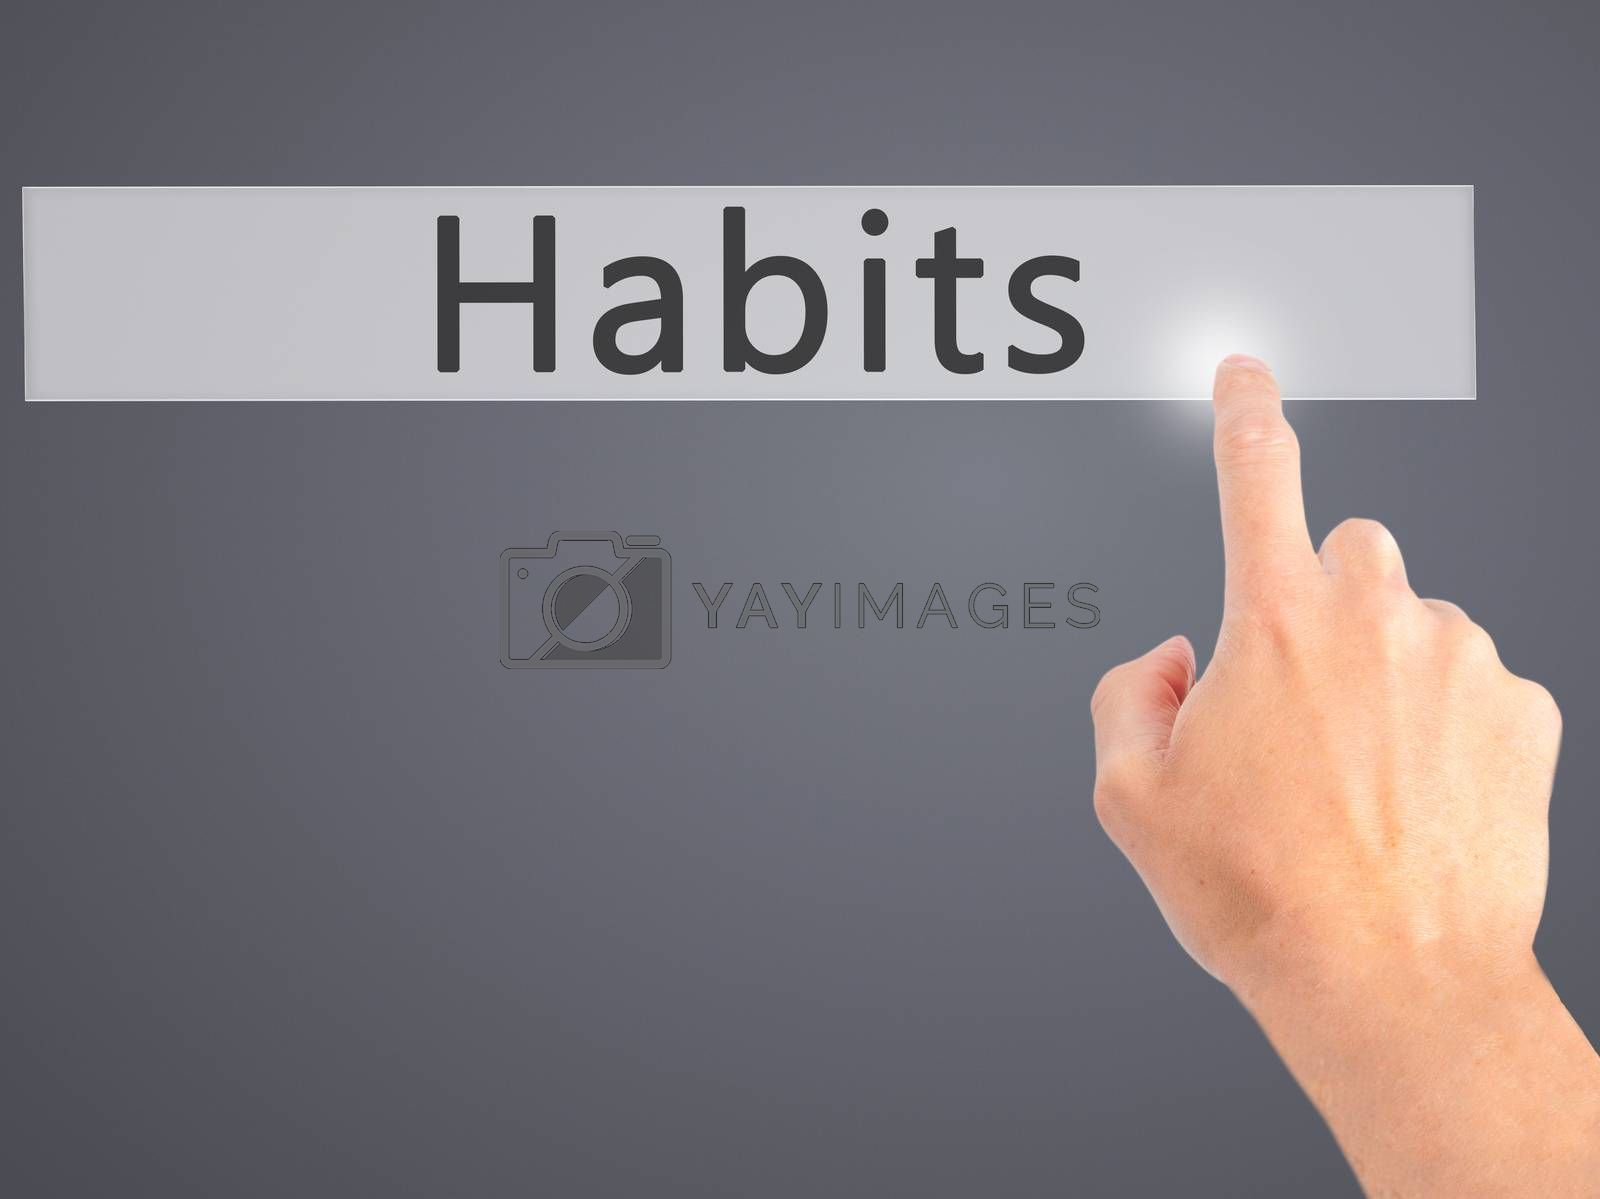 Habits - Hand pressing a button on blurred background concept on by netsay.net